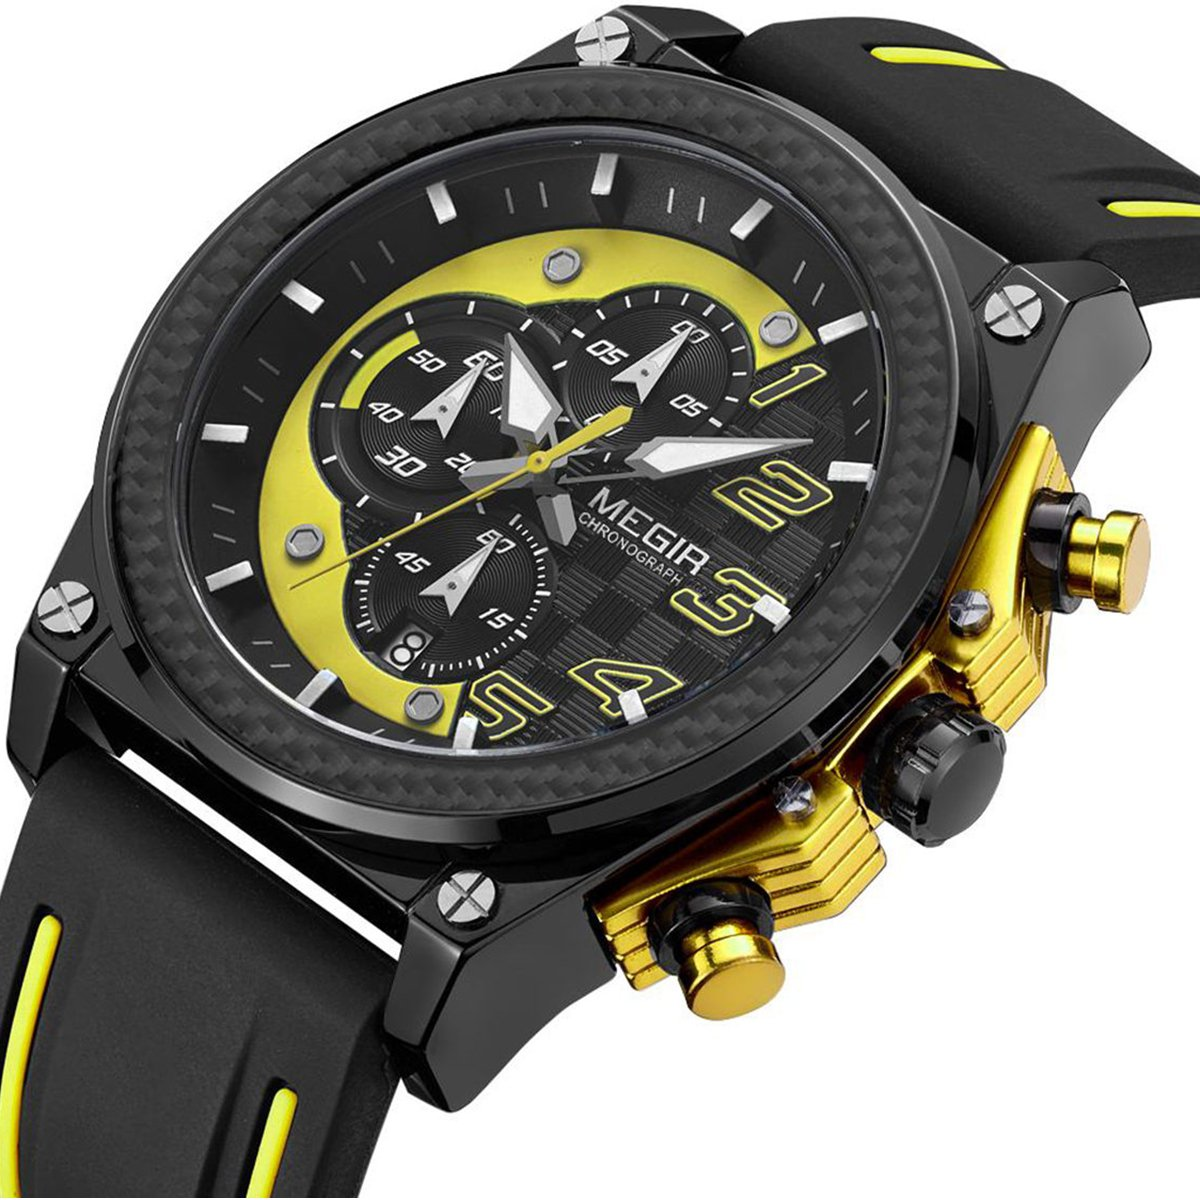 Men Military Watch Quartz Watch Analog Waterproof Silicone for Business Casual Watches for LIANDU Brand (yellow)